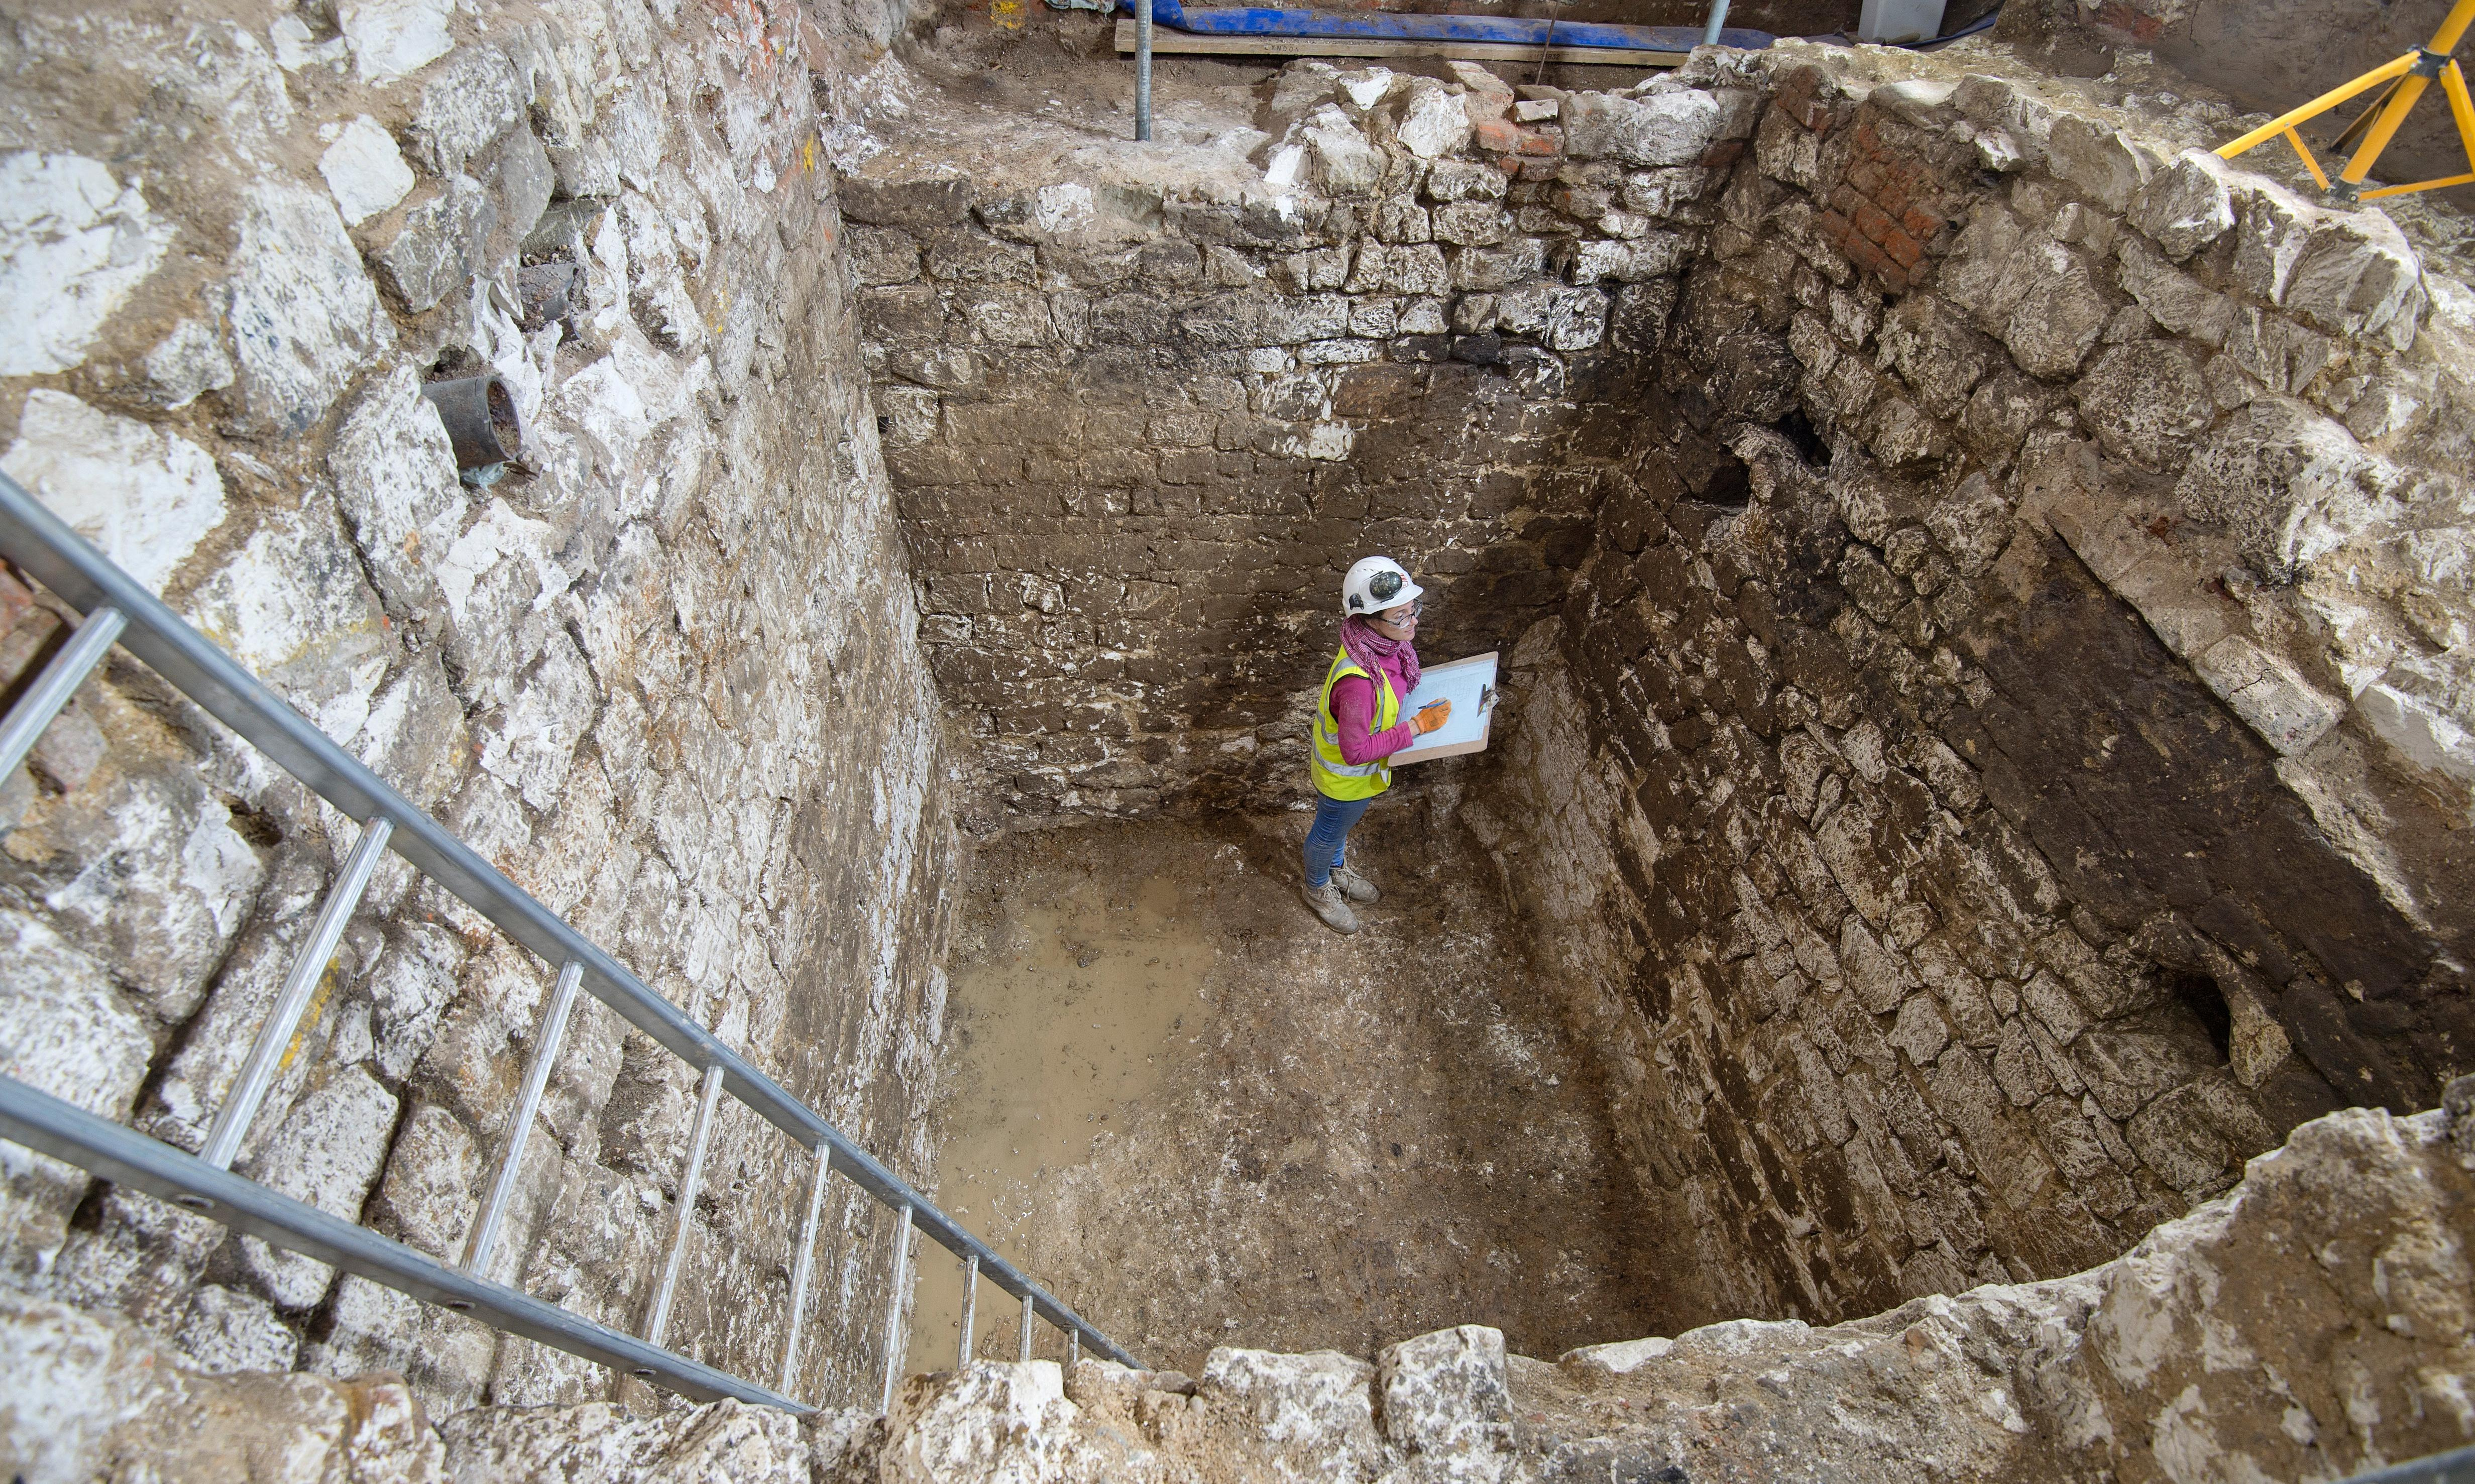 Medieval treasures uncovered – from the sludge of a London cesspit